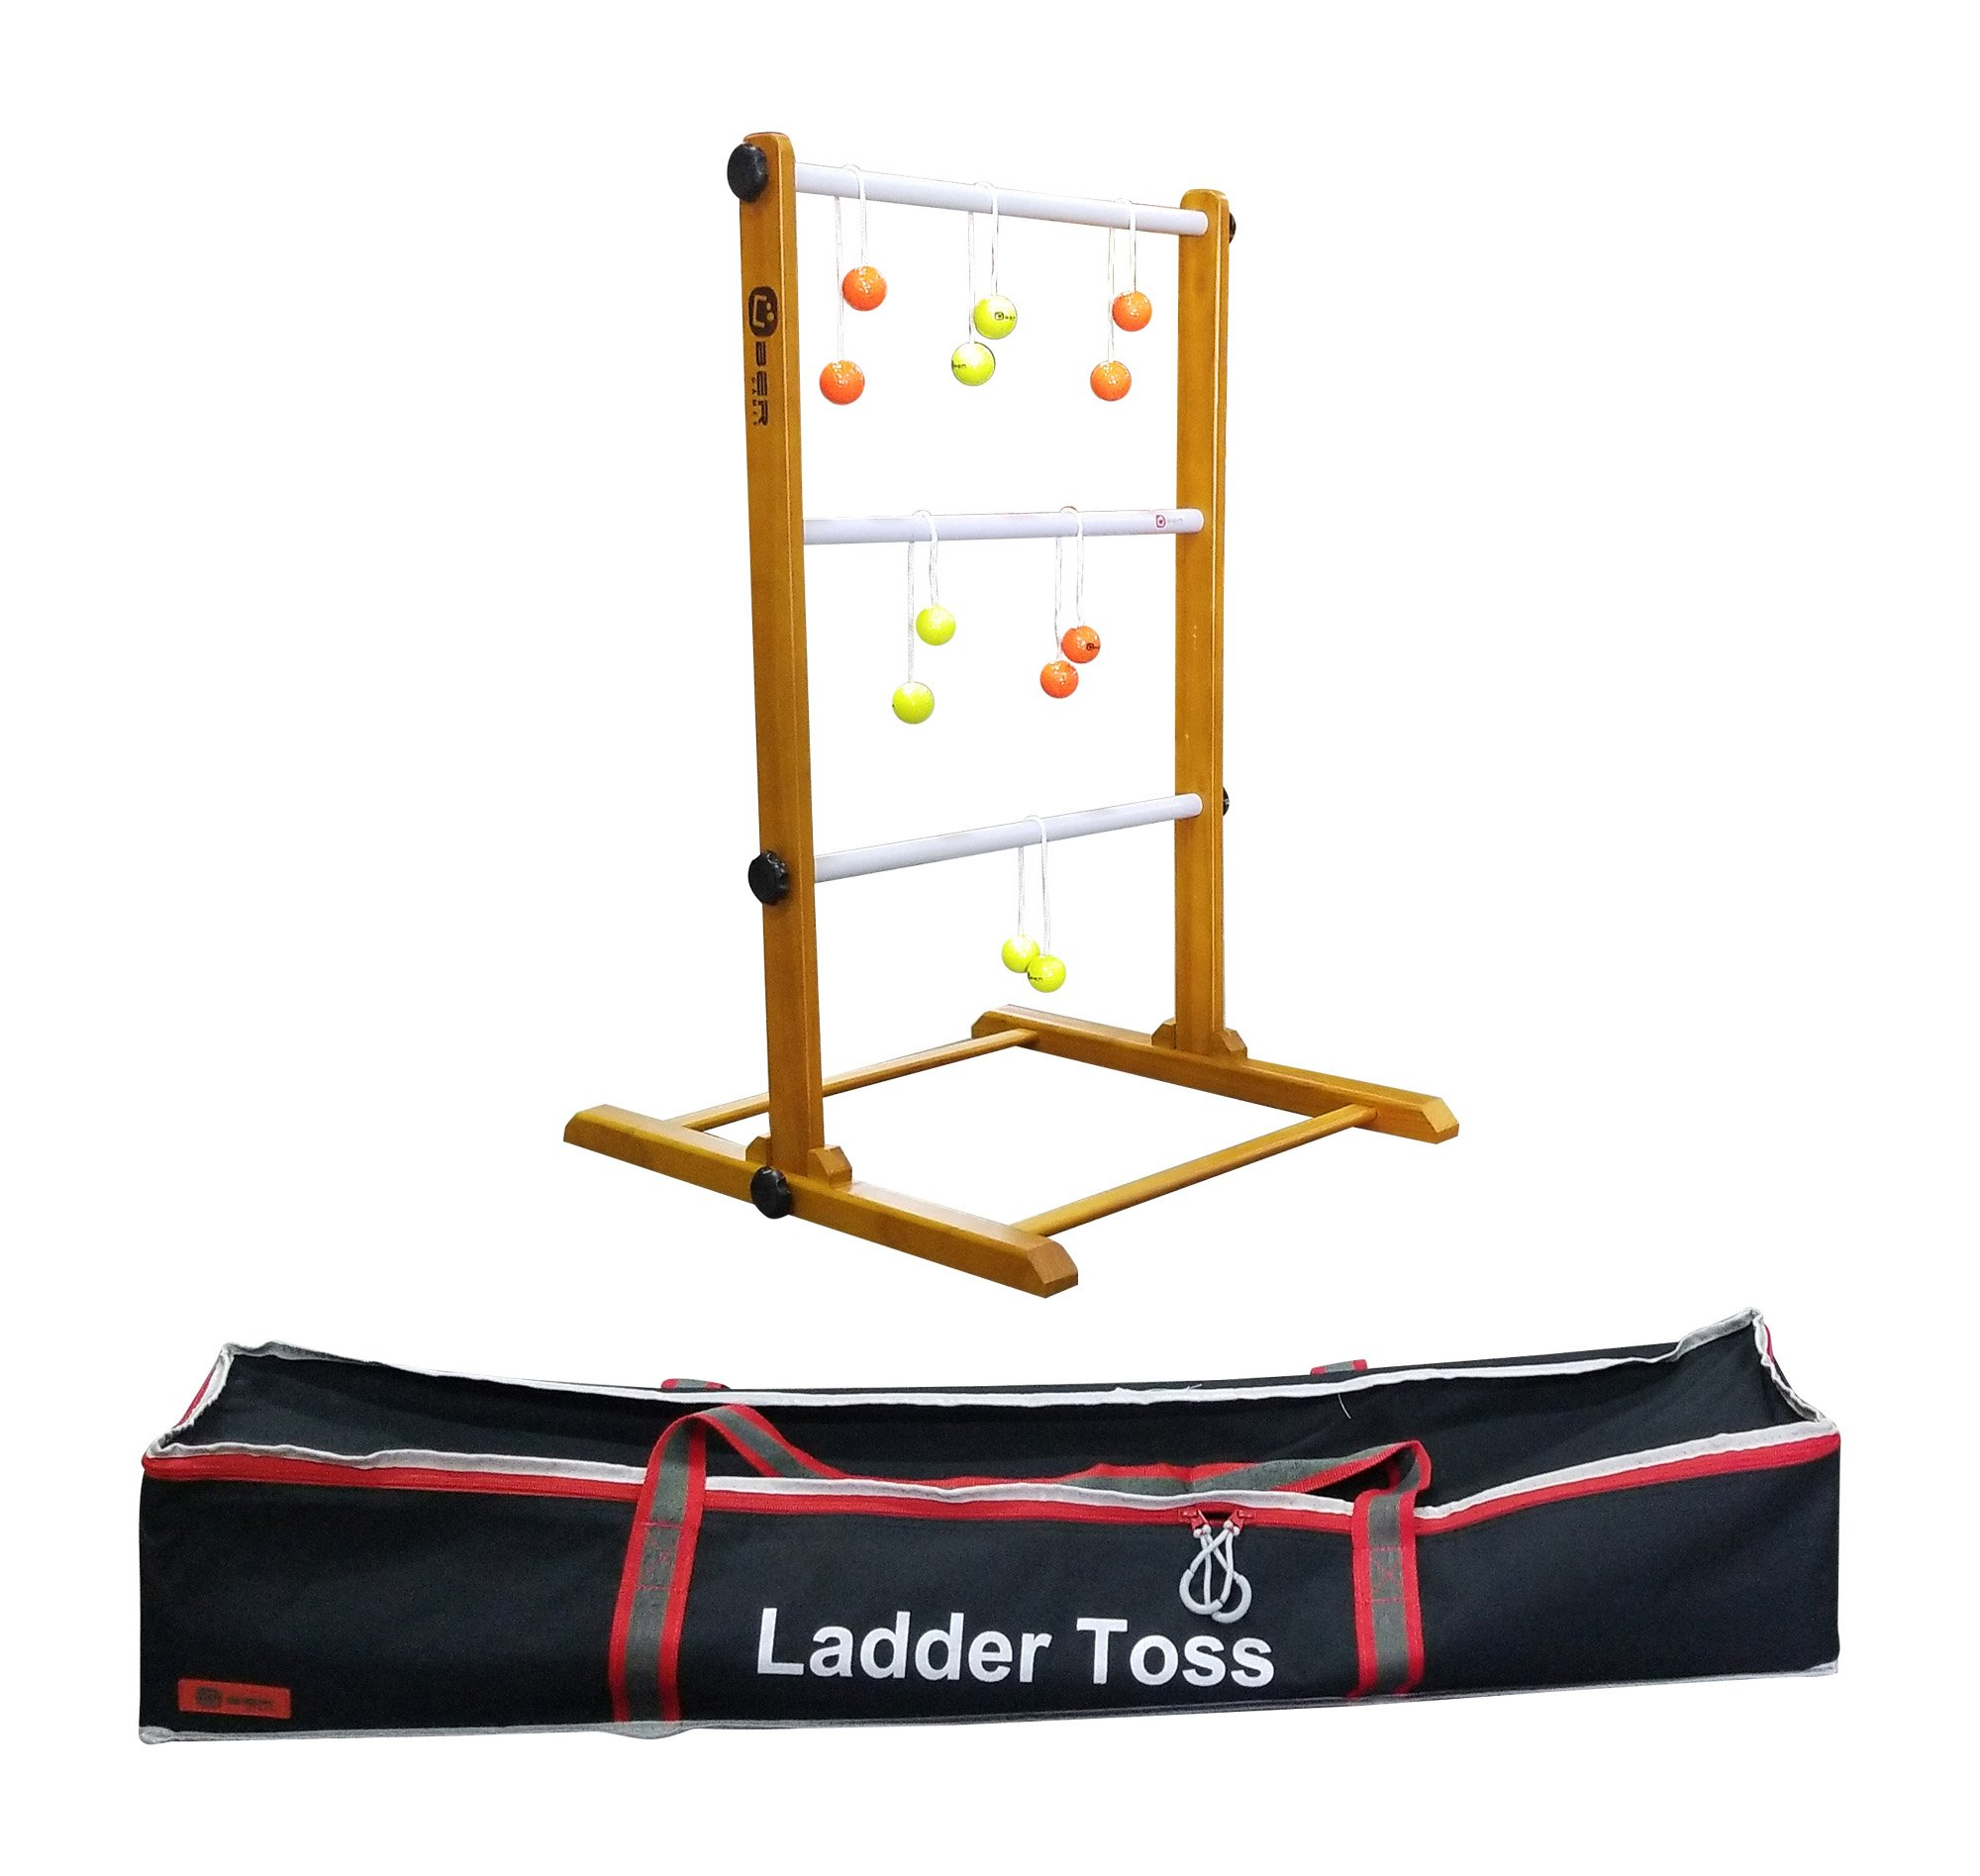 Uber Games Ladder Toss - Single Game - Yellow and Orange Bolas